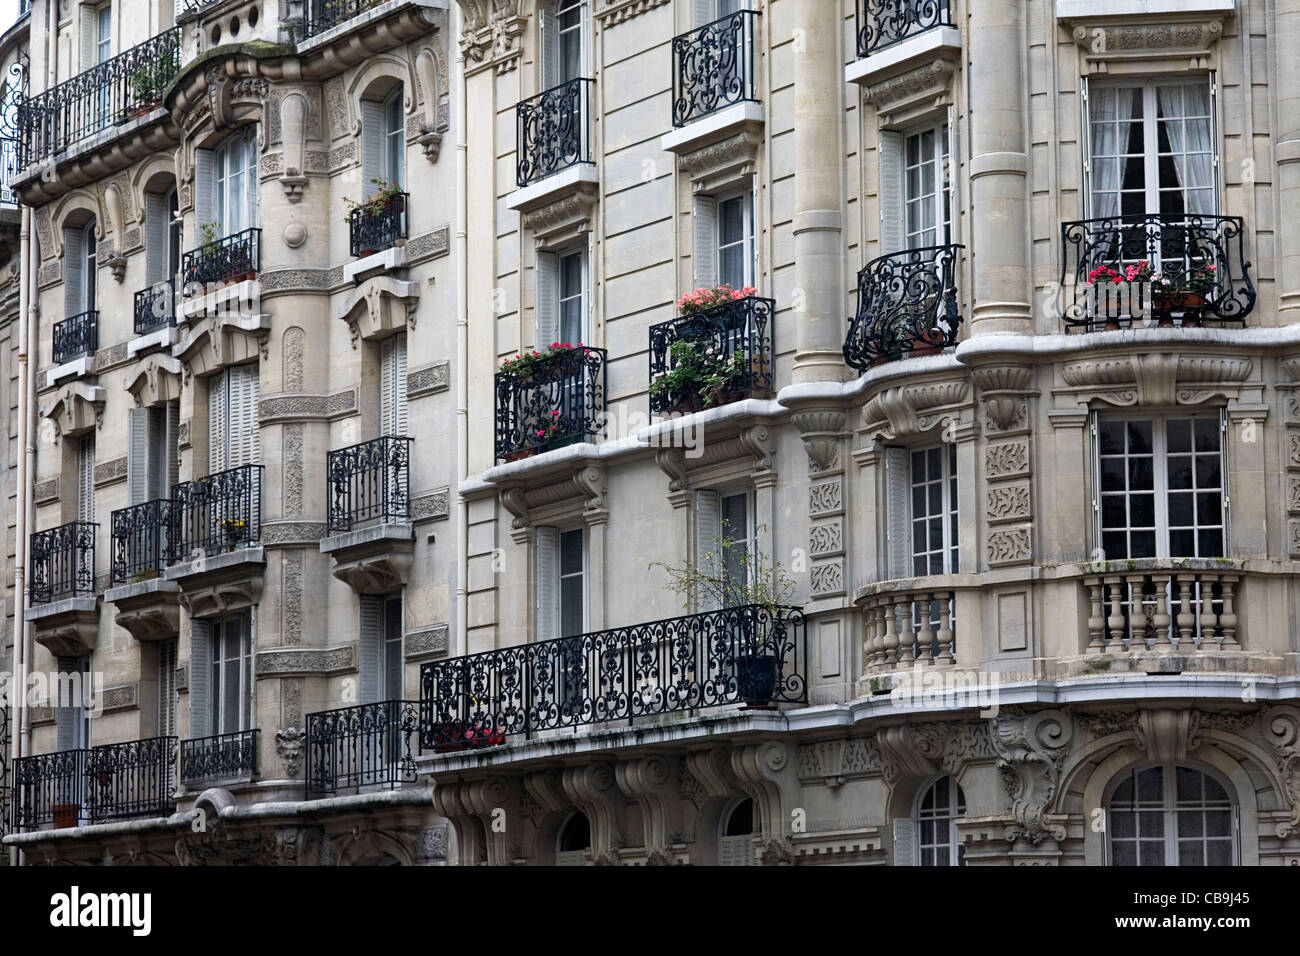 art nouveau architecture paris france stock photo 41393749 alamy